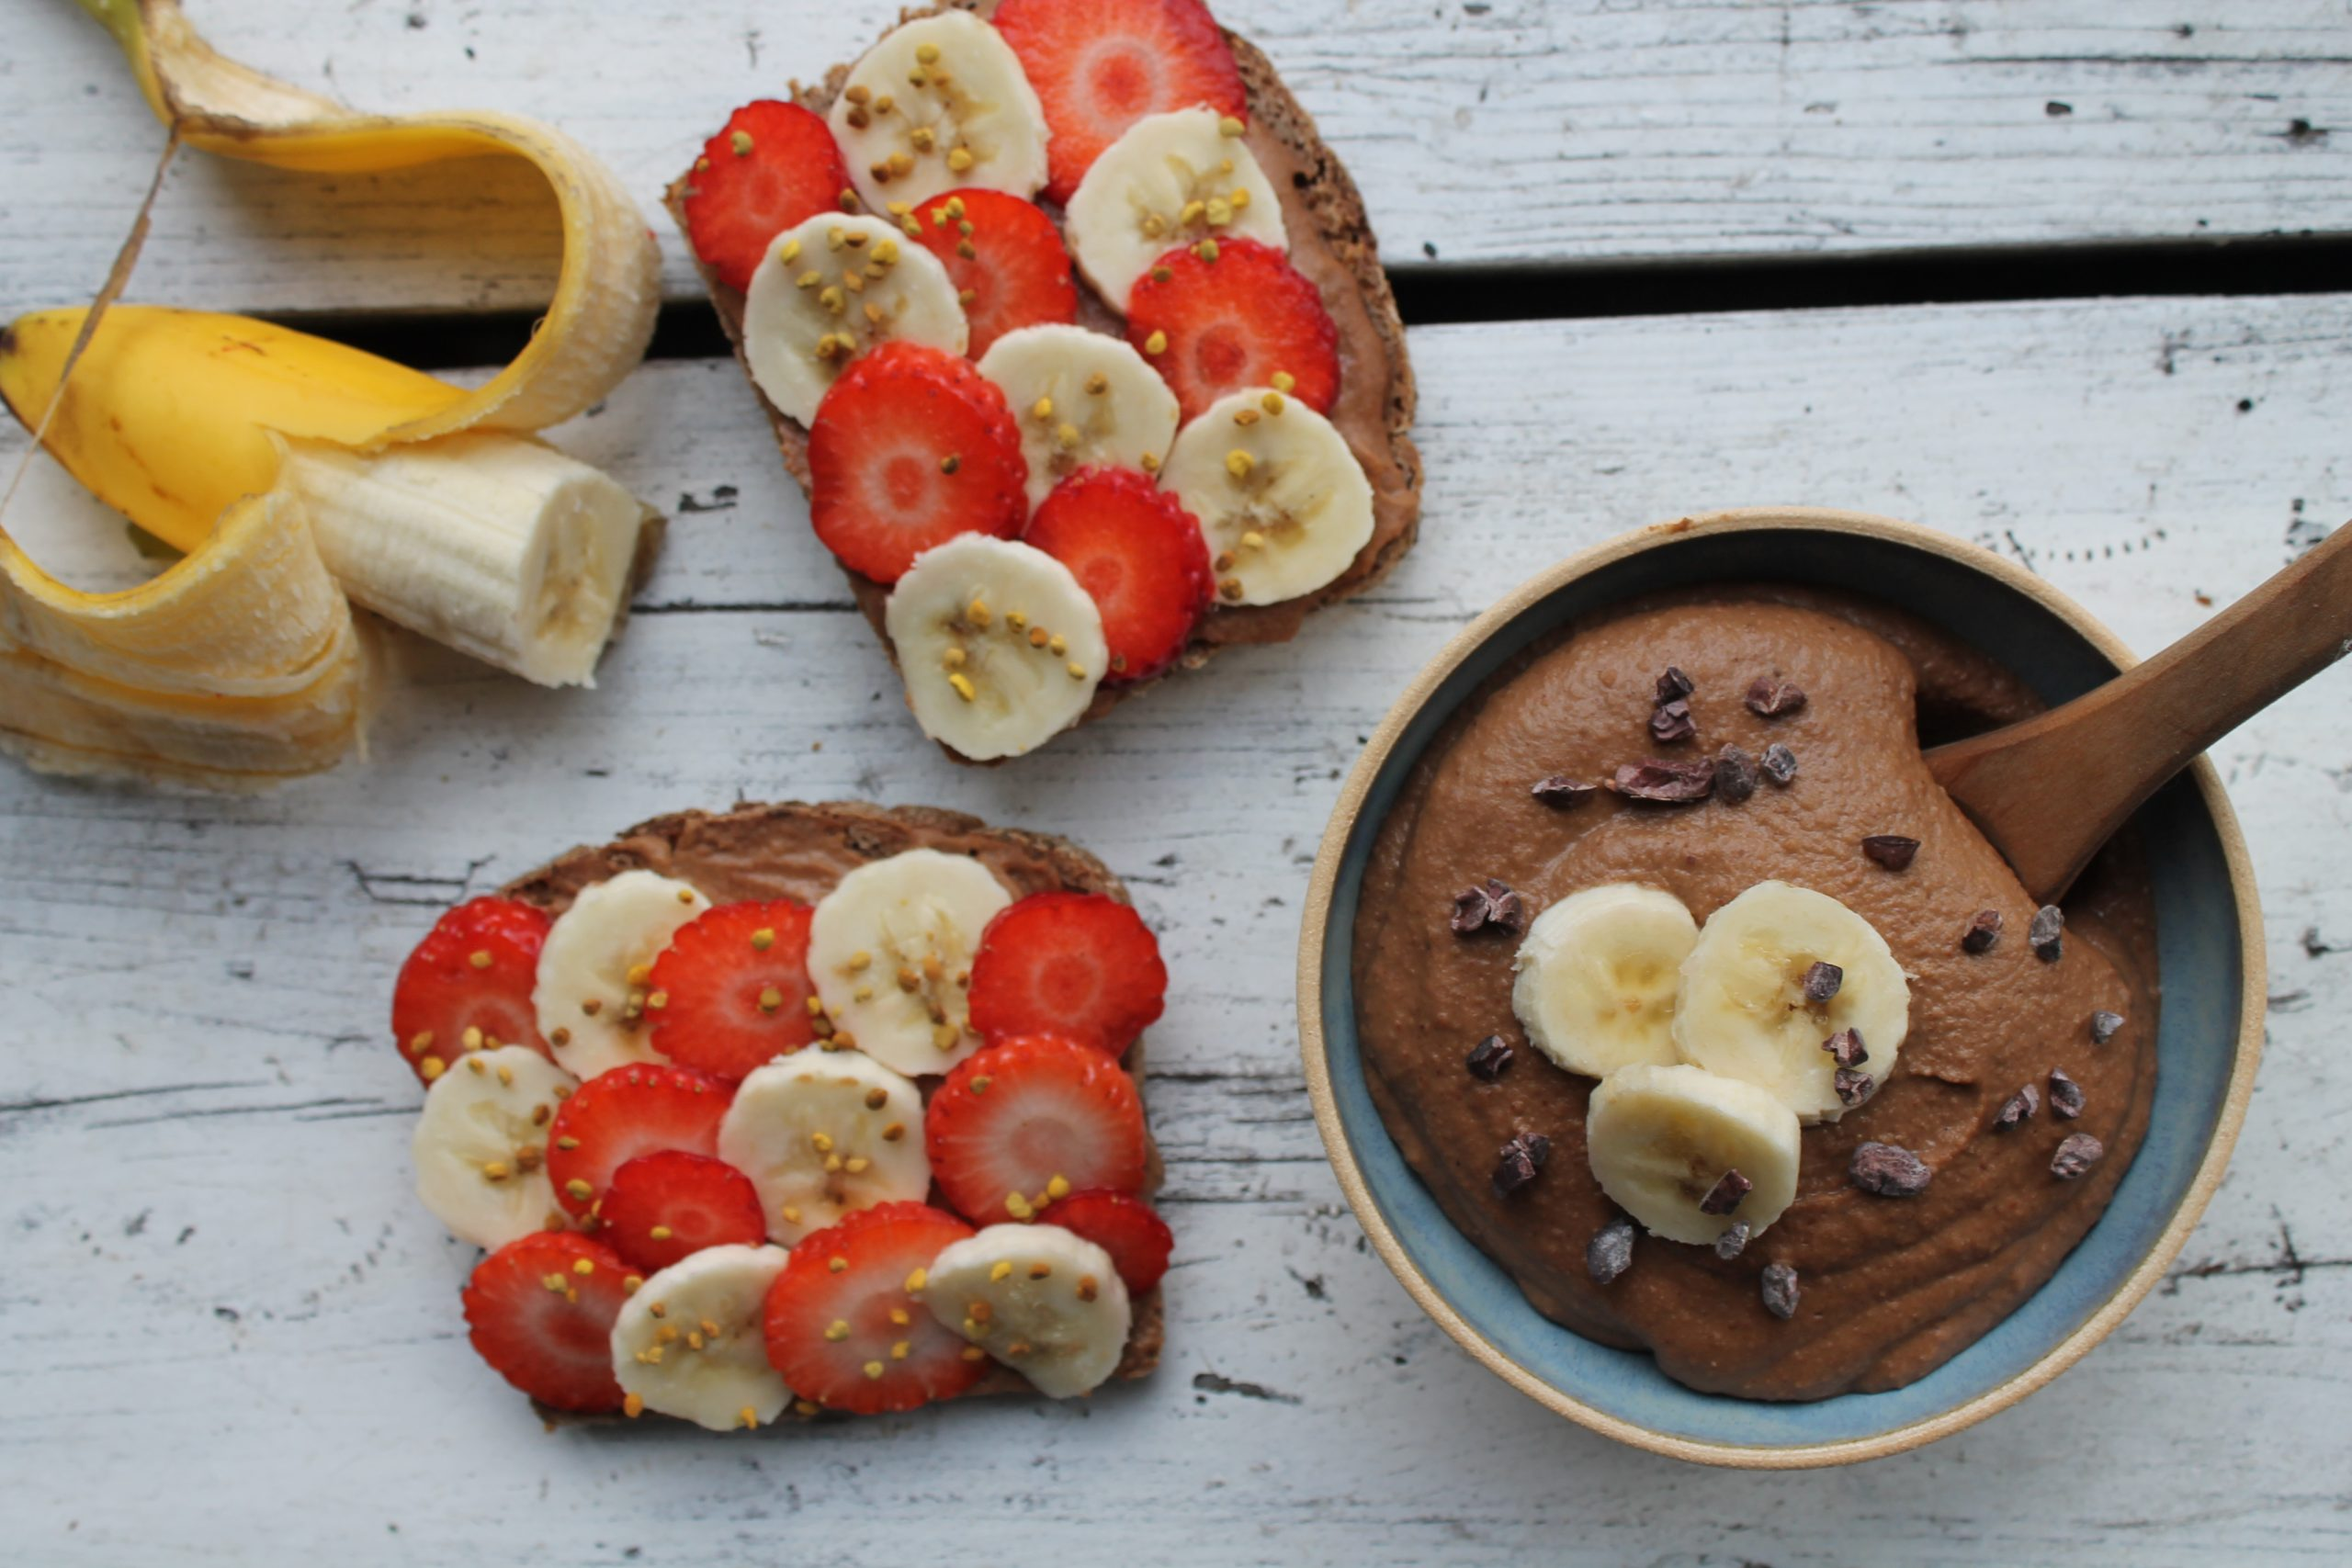 Almond butter, cacao and banana hummus